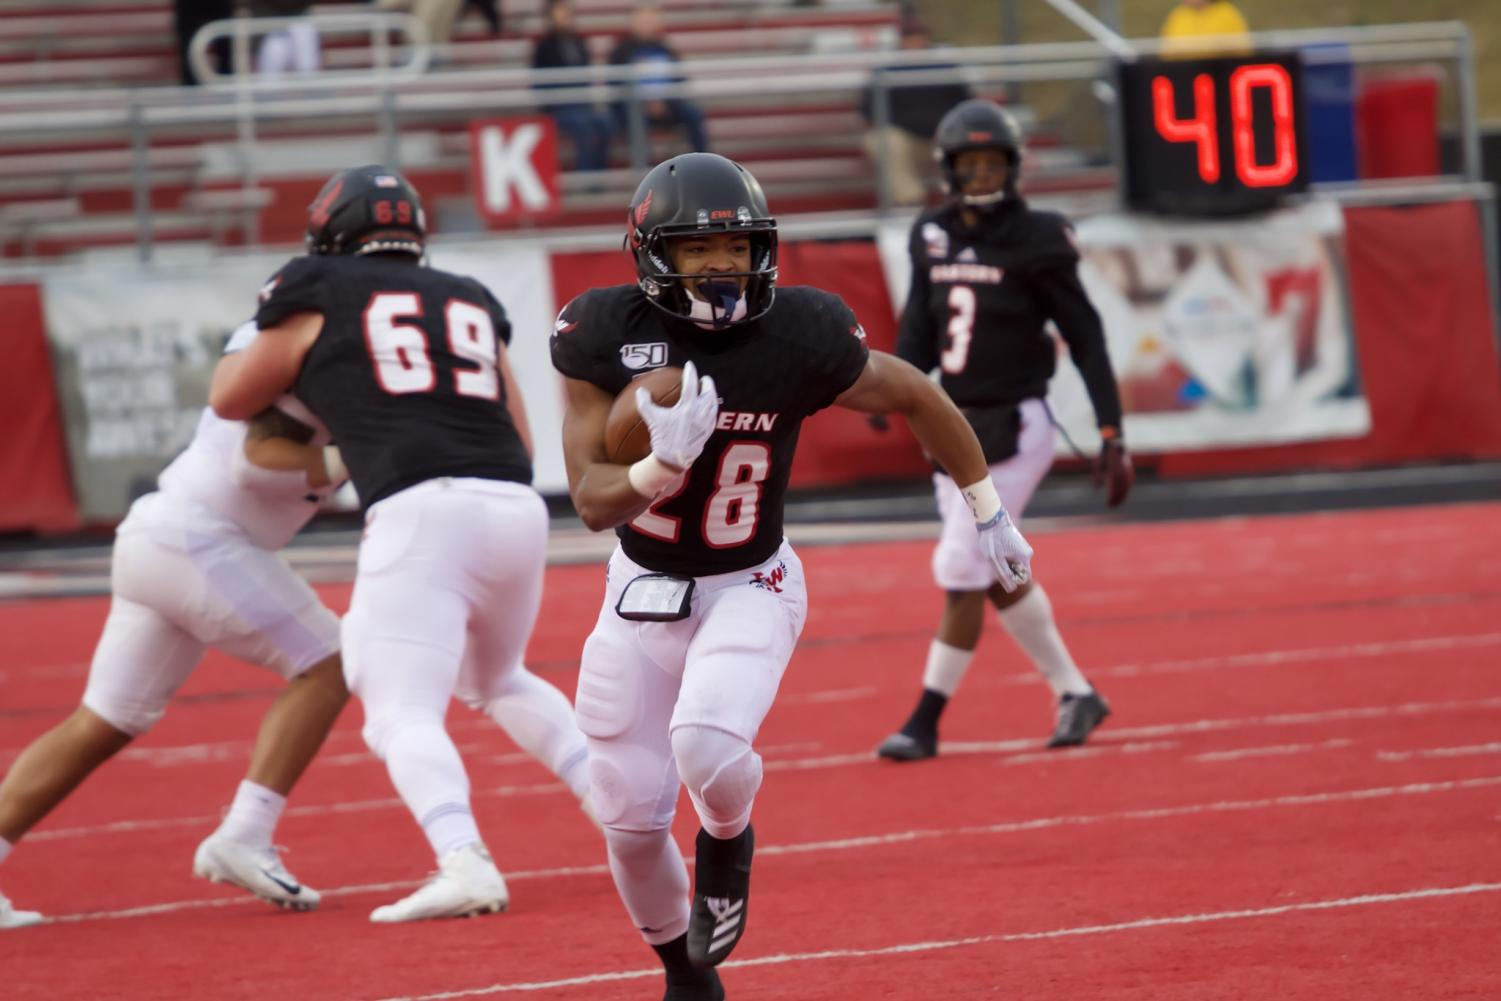 EWU senior running back Antoine Custer Jr. cuts in the open field. Custer had a career-high 218 rushing yards and two touchdowns in EWU's 53-46 win over PSU Saturday.